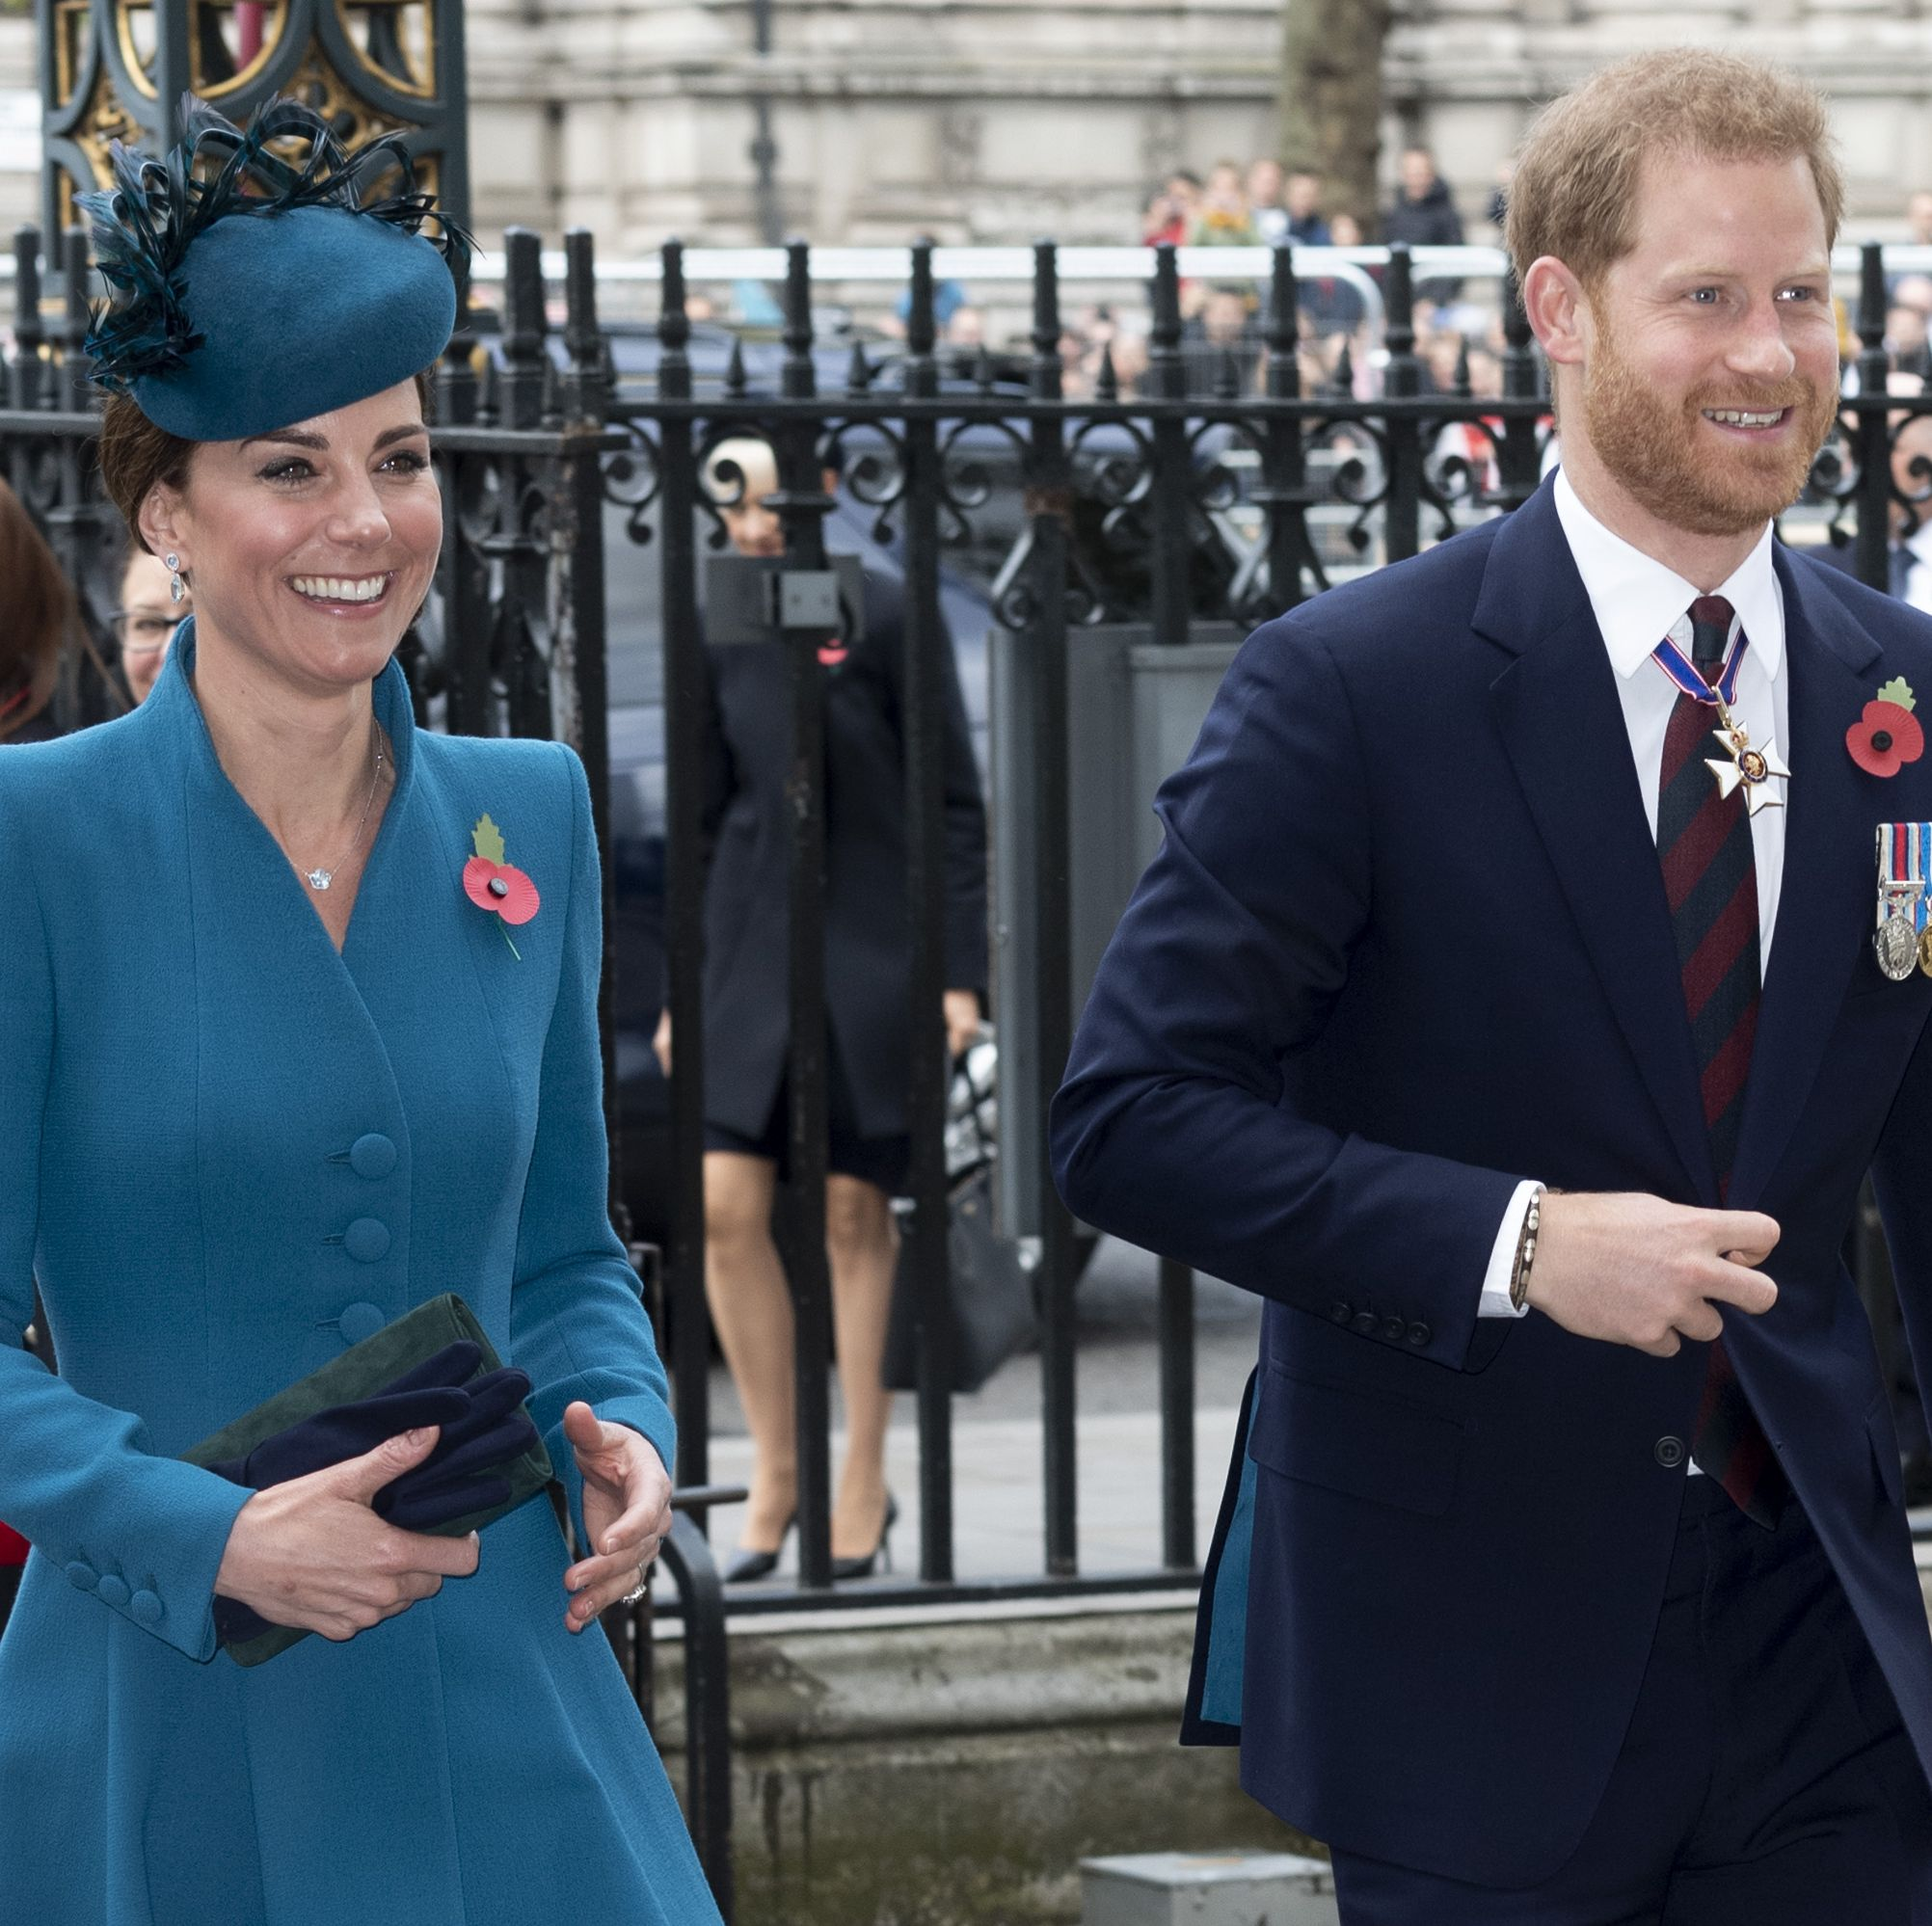 The Duchess of Cambridge steps out looking stunning in teal at Westminster Abbey